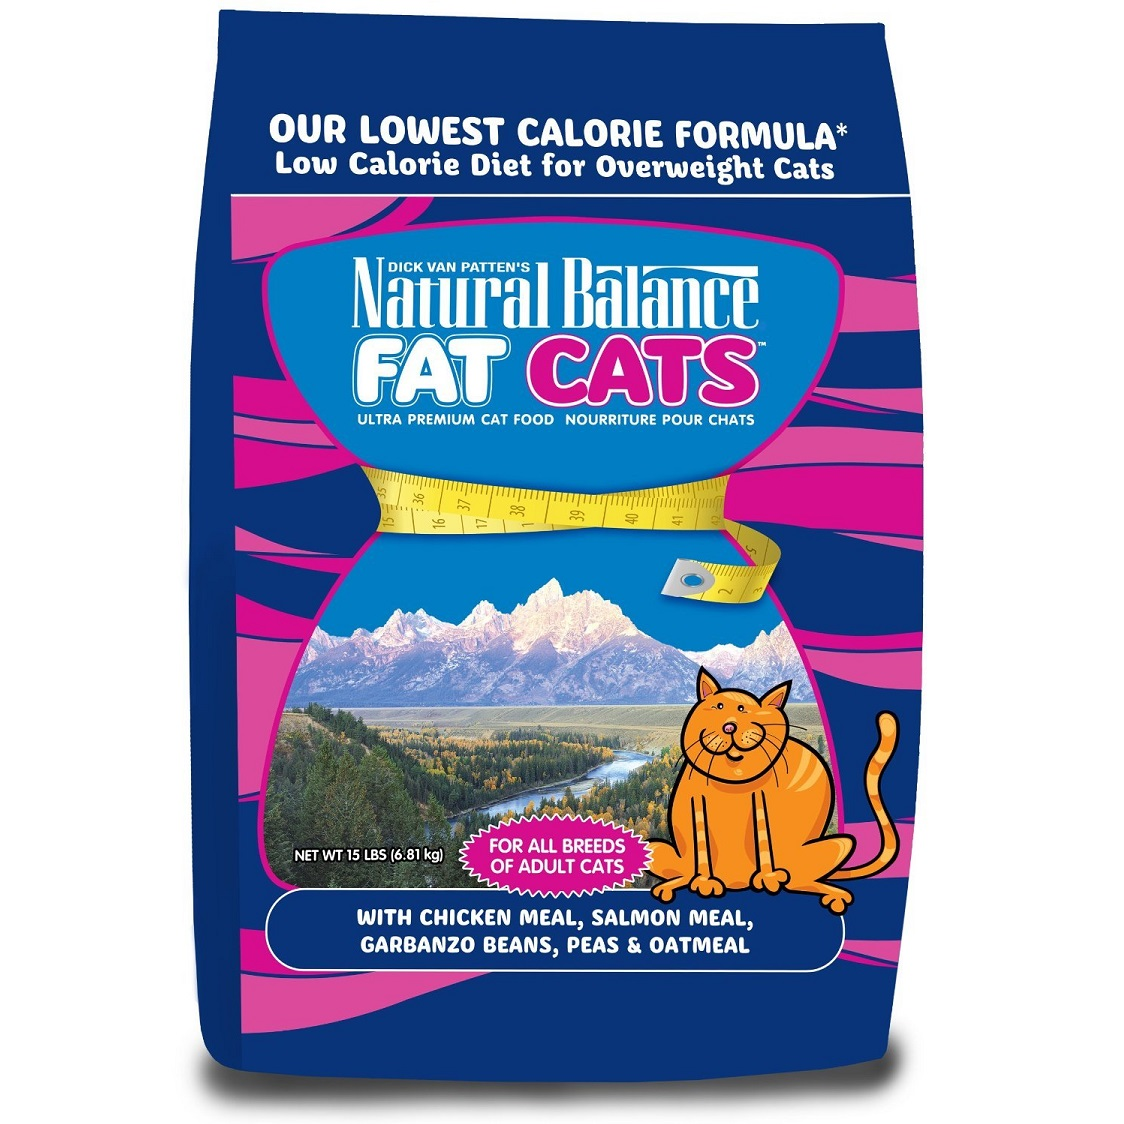 Natural Balance Fat Cats with Chicken Meal, Salmon Meal, Garbanzo Beans, Peas & Oatmeal Dry Cat Food 15lbs